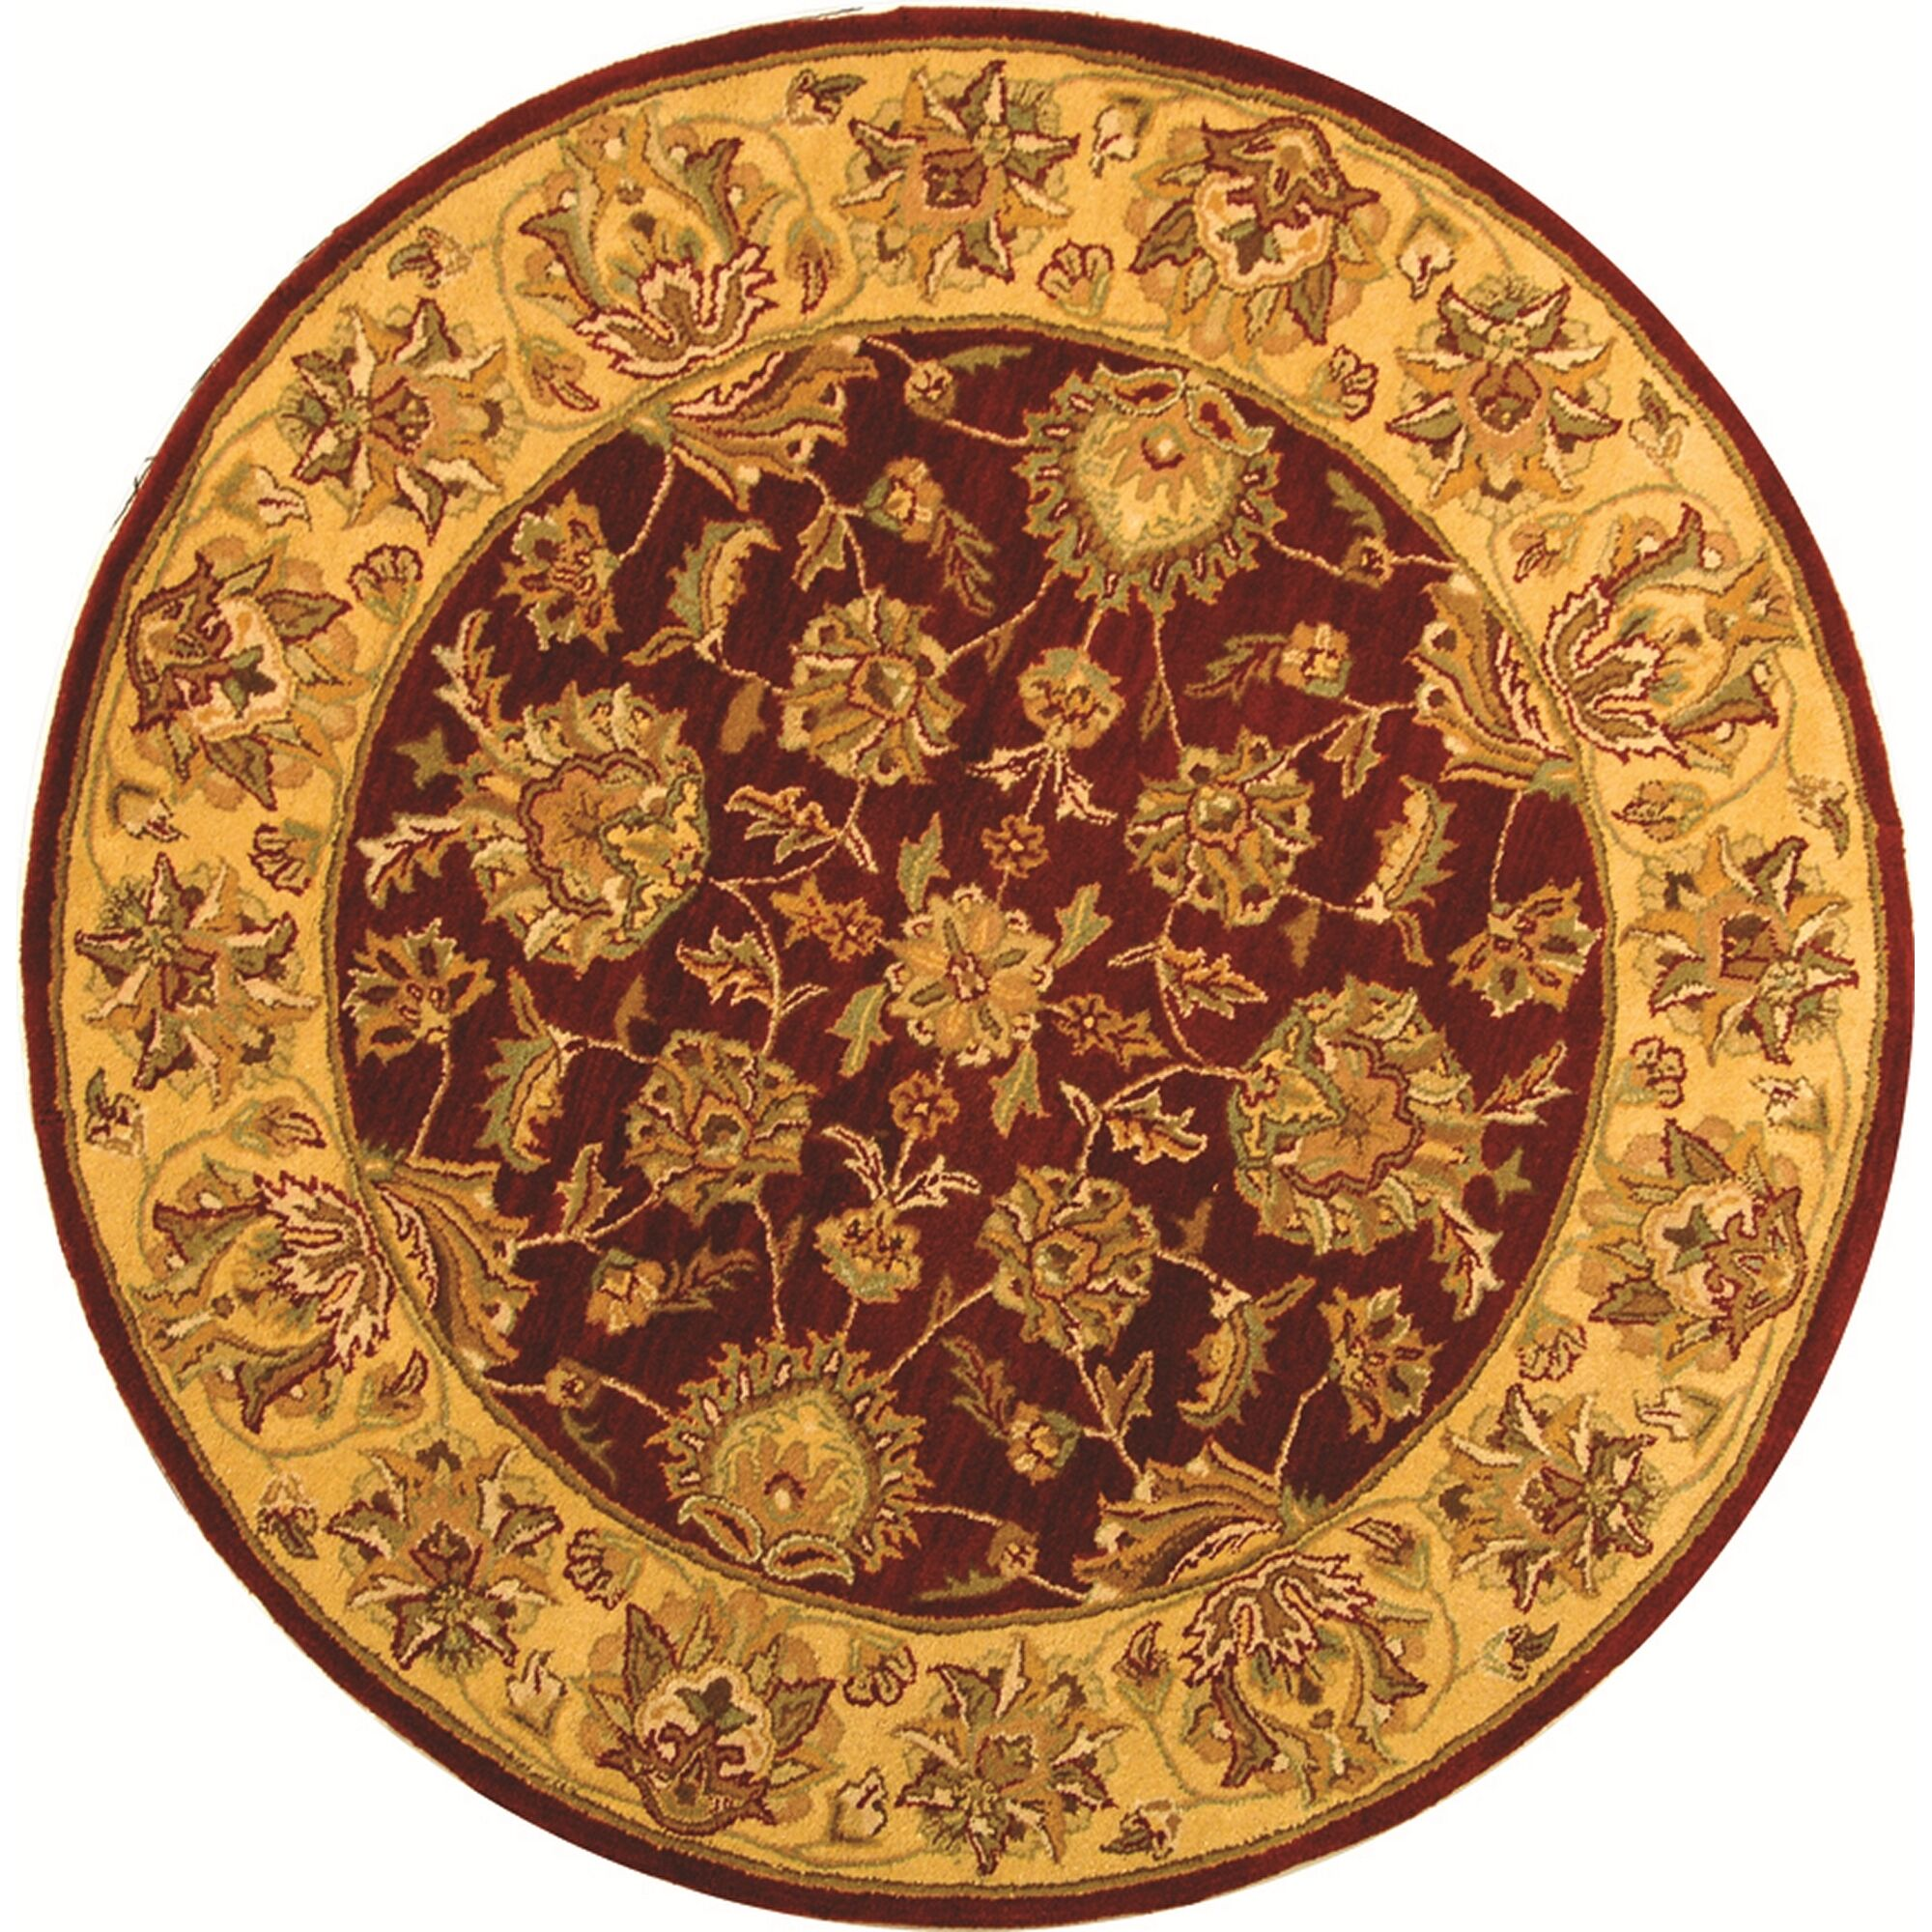 Cranmore Hand-Tufted Wool Red/Gold  Area Rug Rug Size: Round 6'